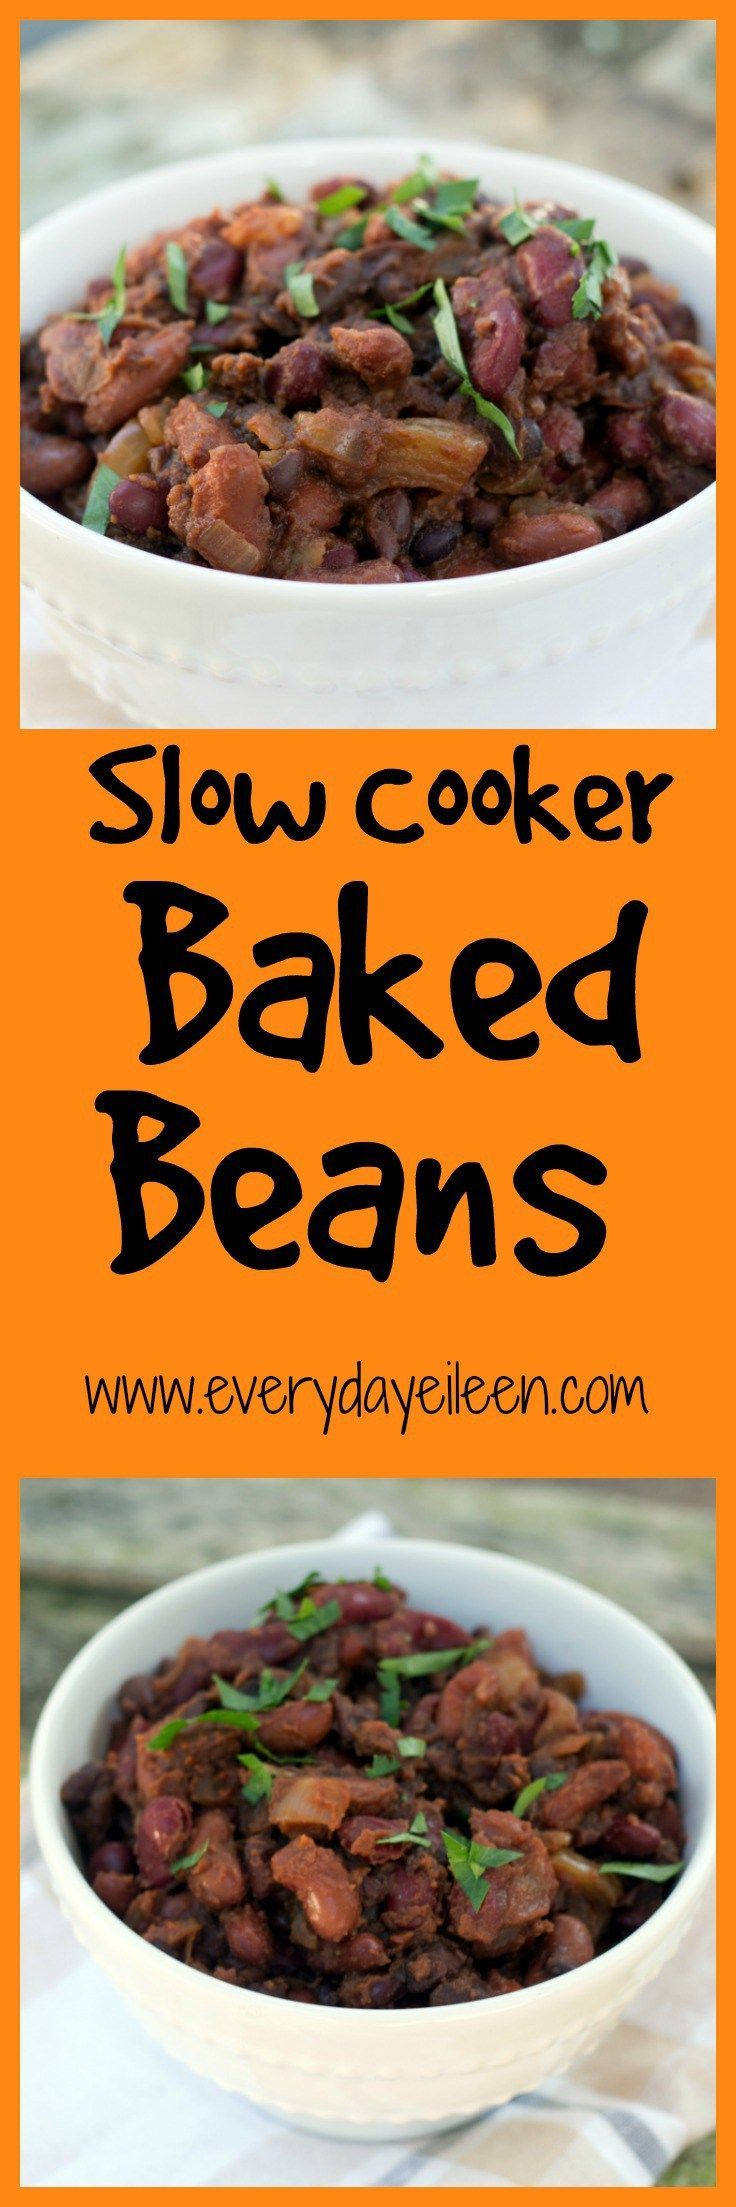 Slow Cooker Baked Beans | Recipe | Beans, Slow cooker baked beans and ...